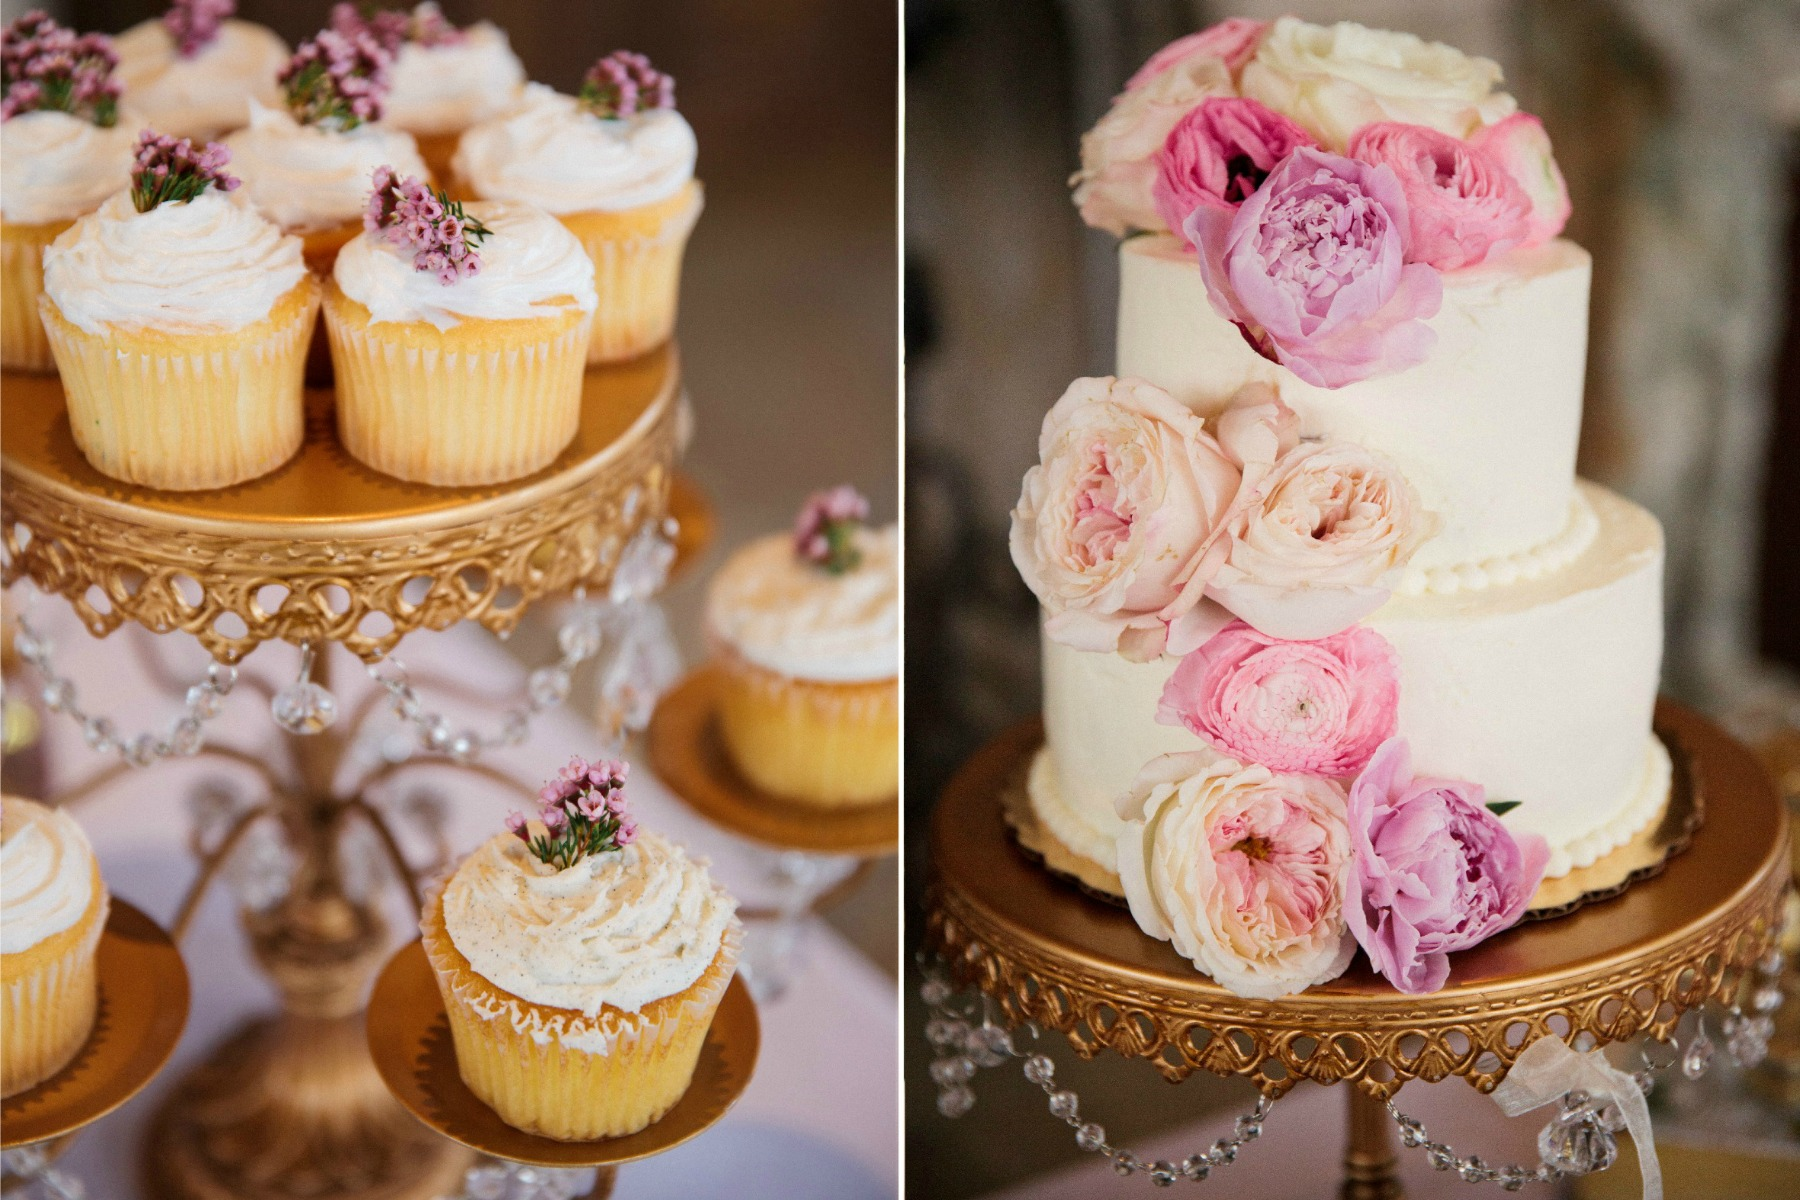 cupcakes and wedding cake with flowers on gold cake stand